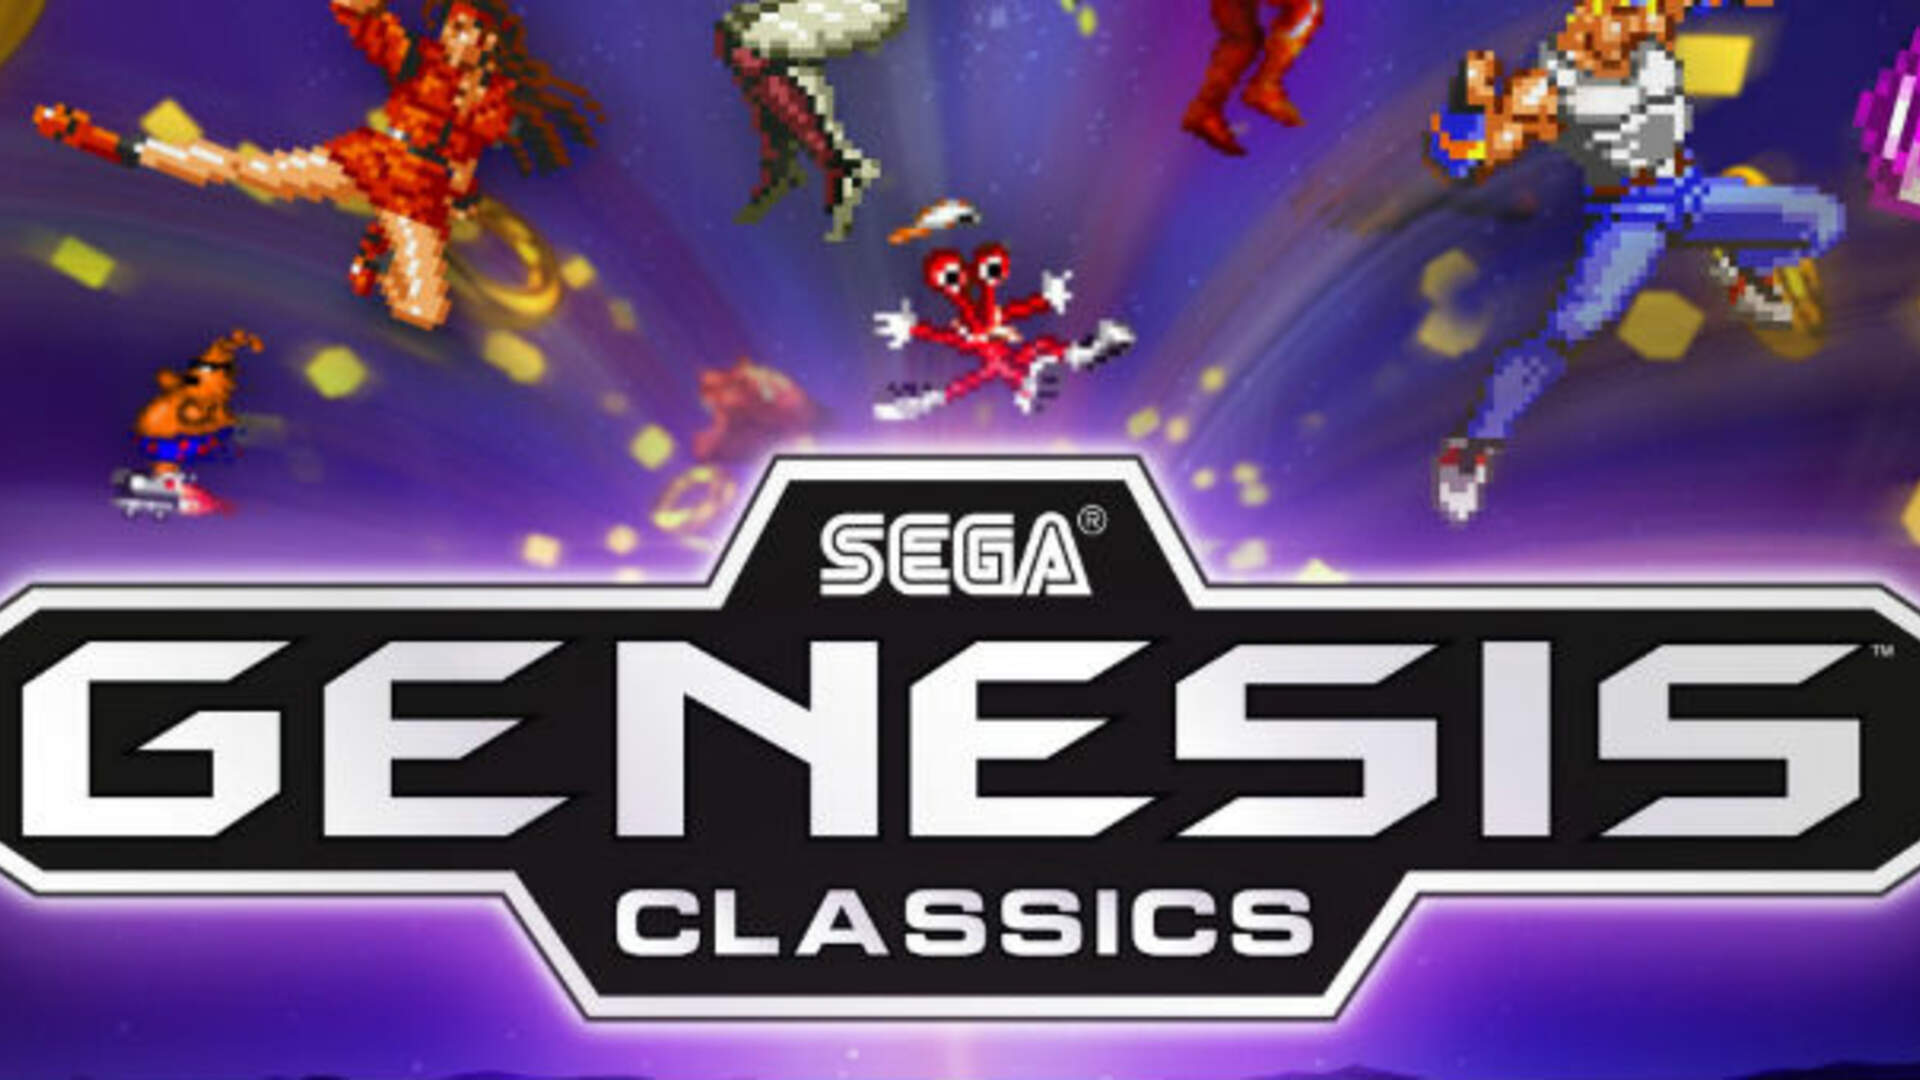 Sega Genesis Classics Can't Help Omitting a Big Piece of Genesis History